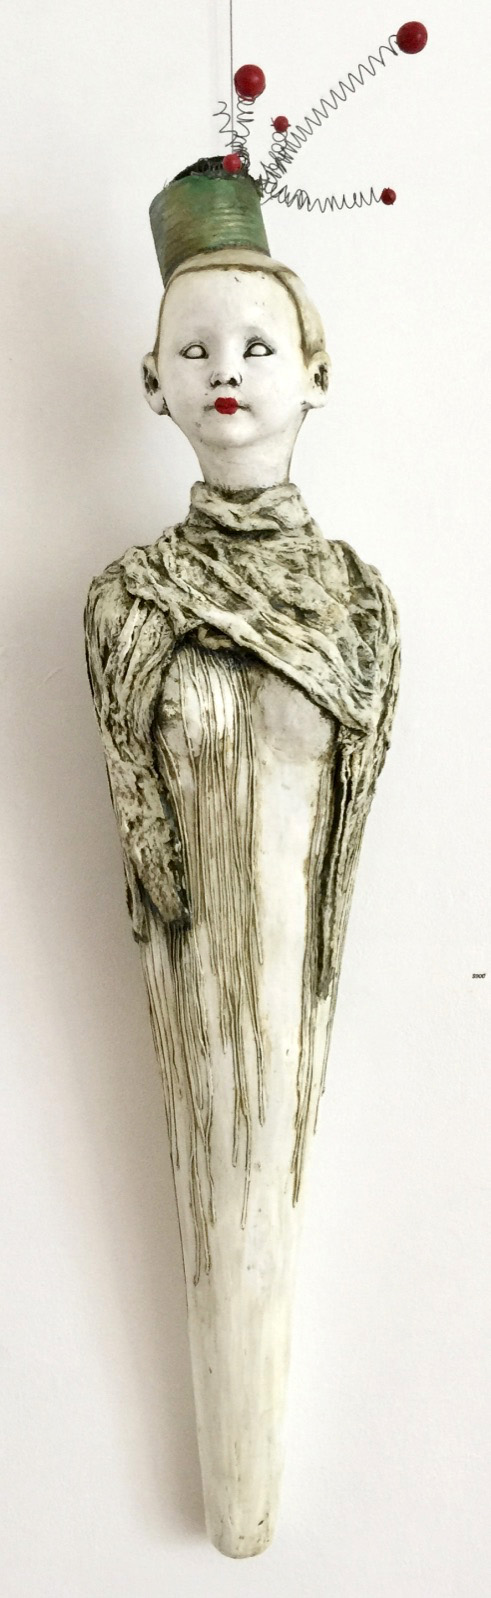 Spik-Spok   Plaster Wrap, Plaster, Cement, Modeling Compound, Clay, Cast Iron, Acrylic Paint and Medium, Found Objects  $900